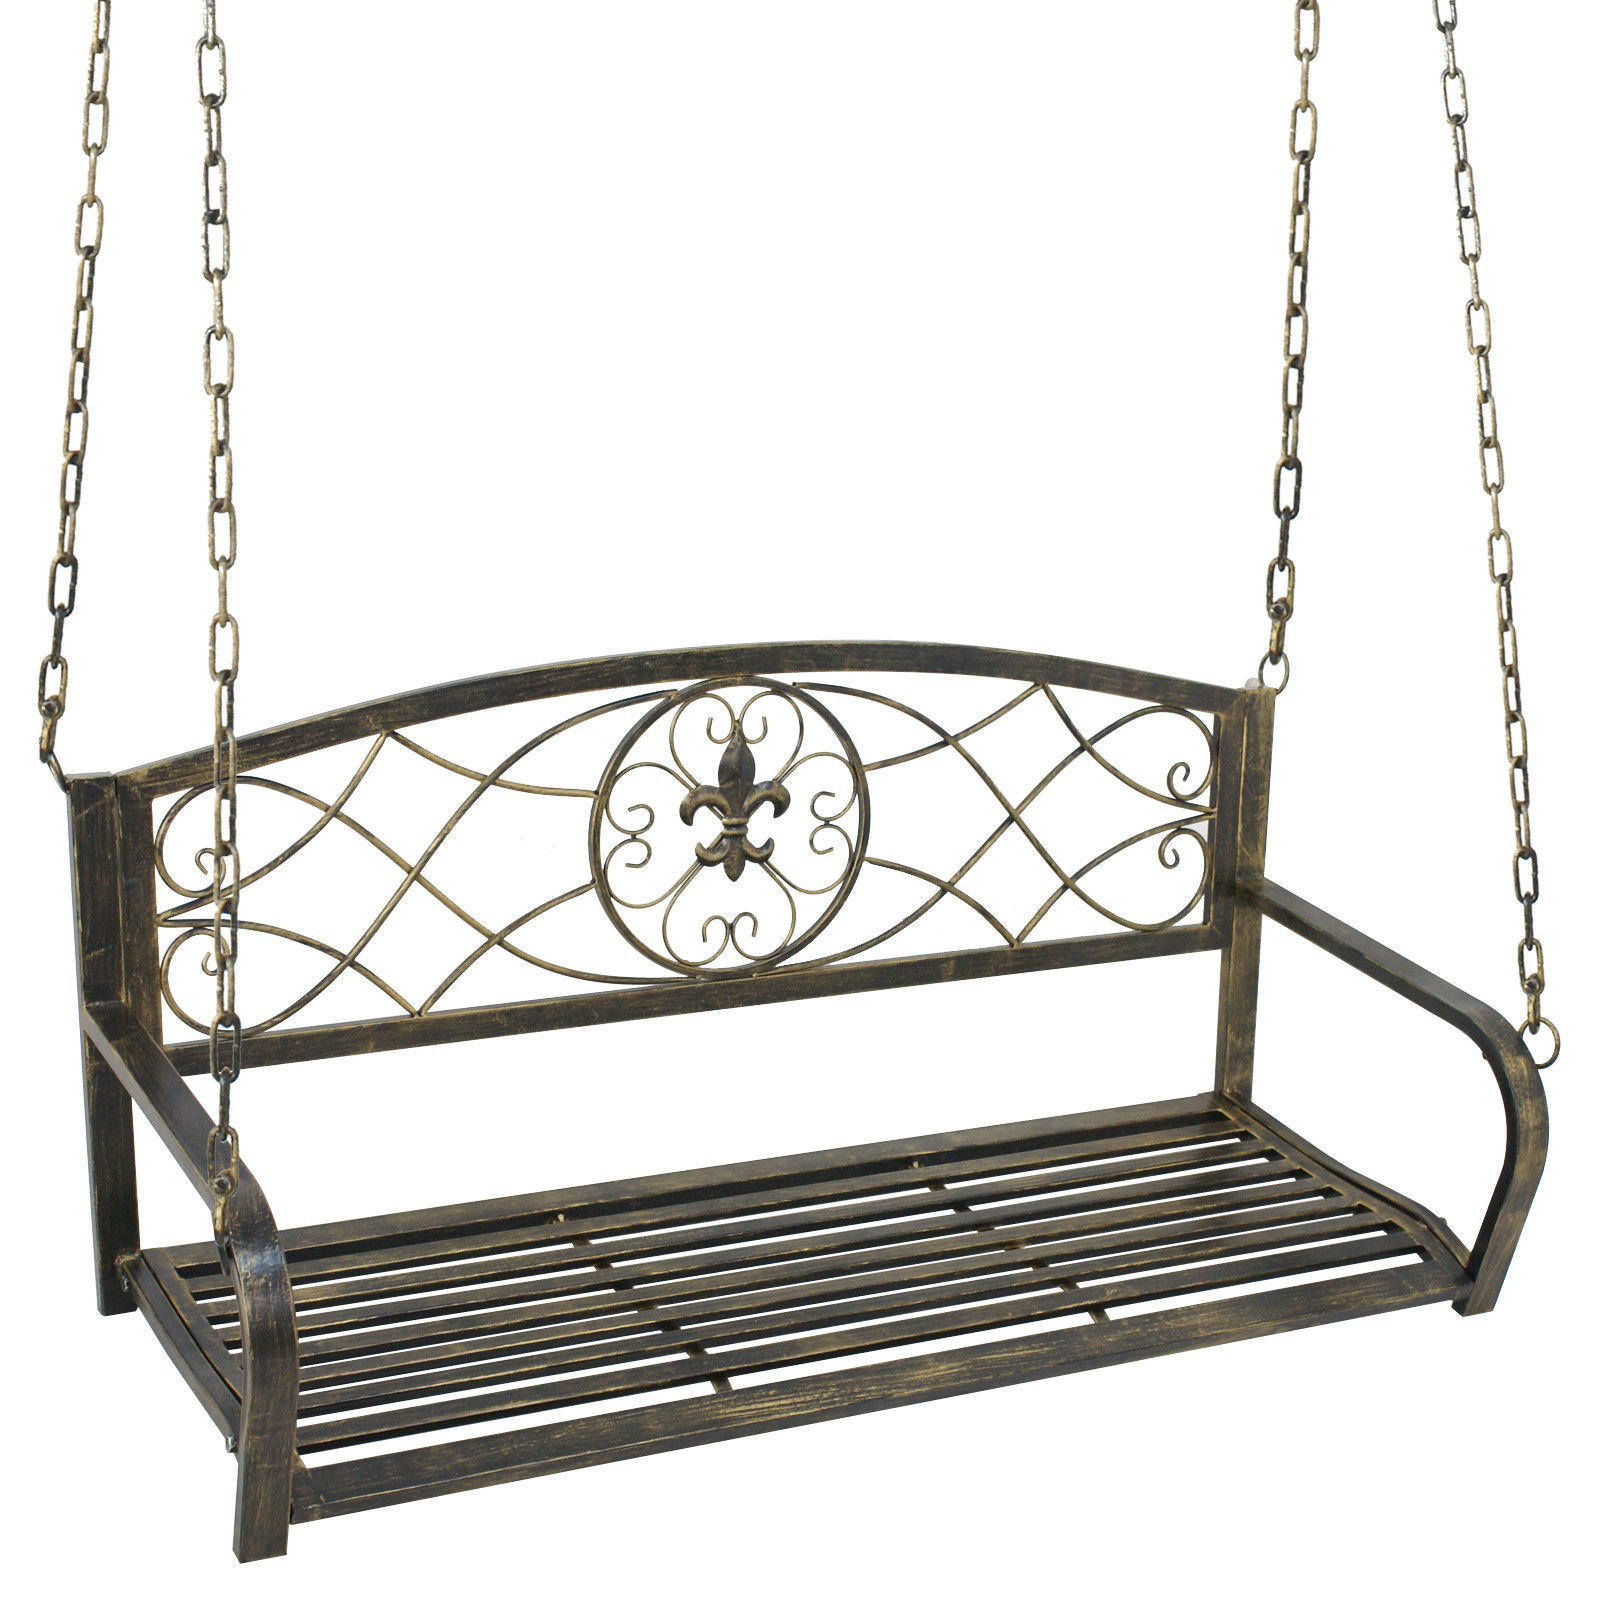 Zeny Metal Porch Swing Outdoor Patio Hanging Furniture 2 Person Iron Chains Yard Deck by